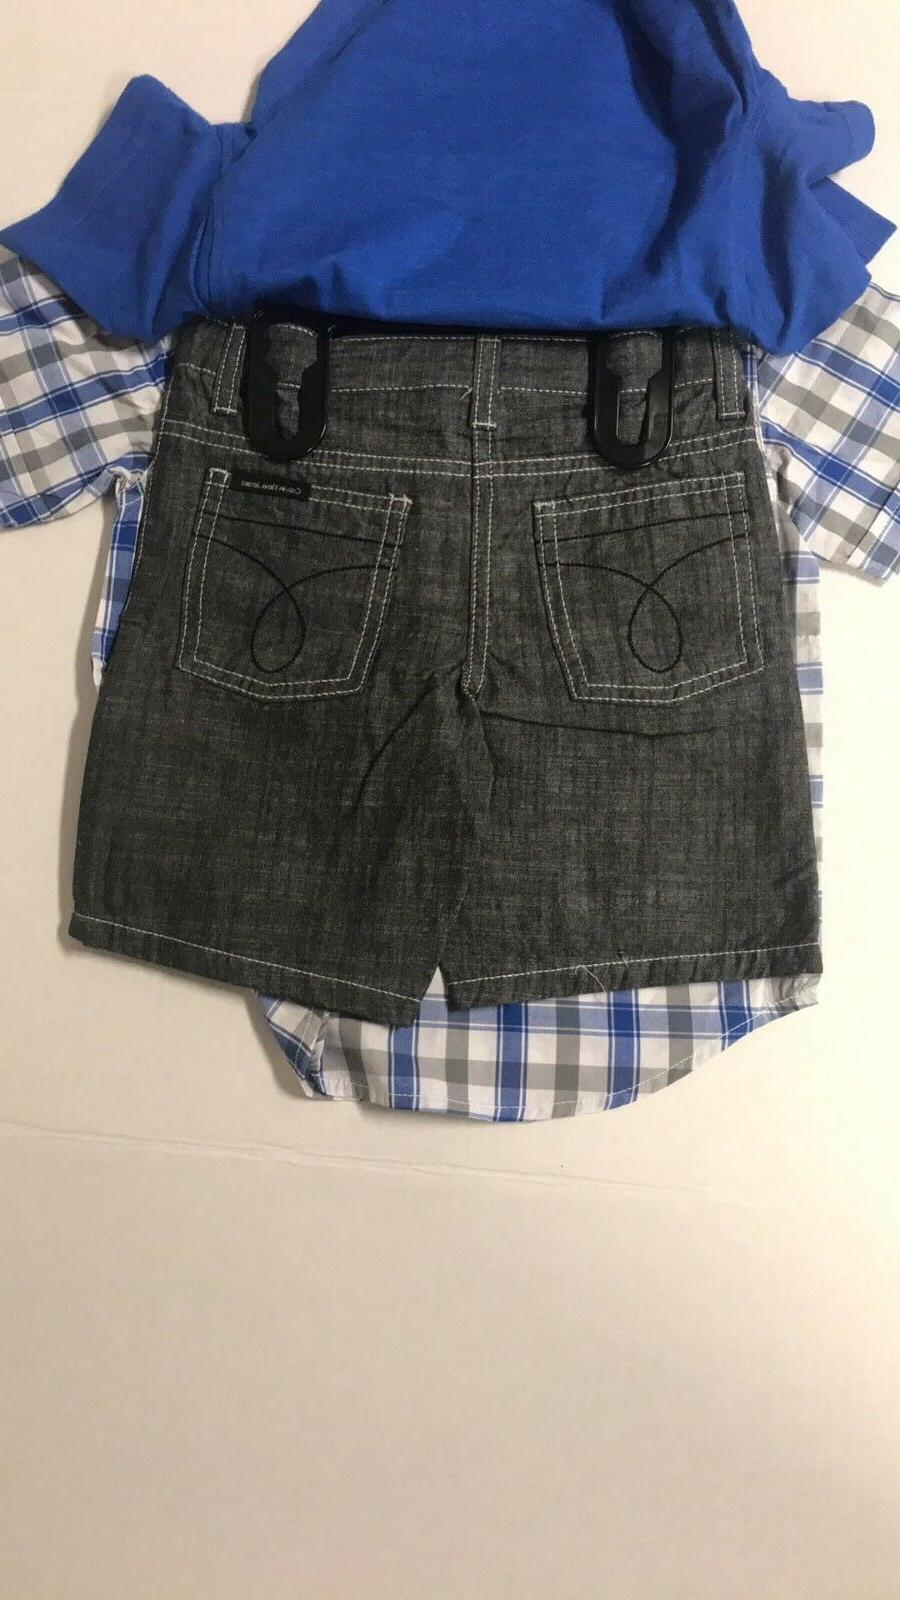 New Calvin Plaid Outfit 3 piece set & Shorts